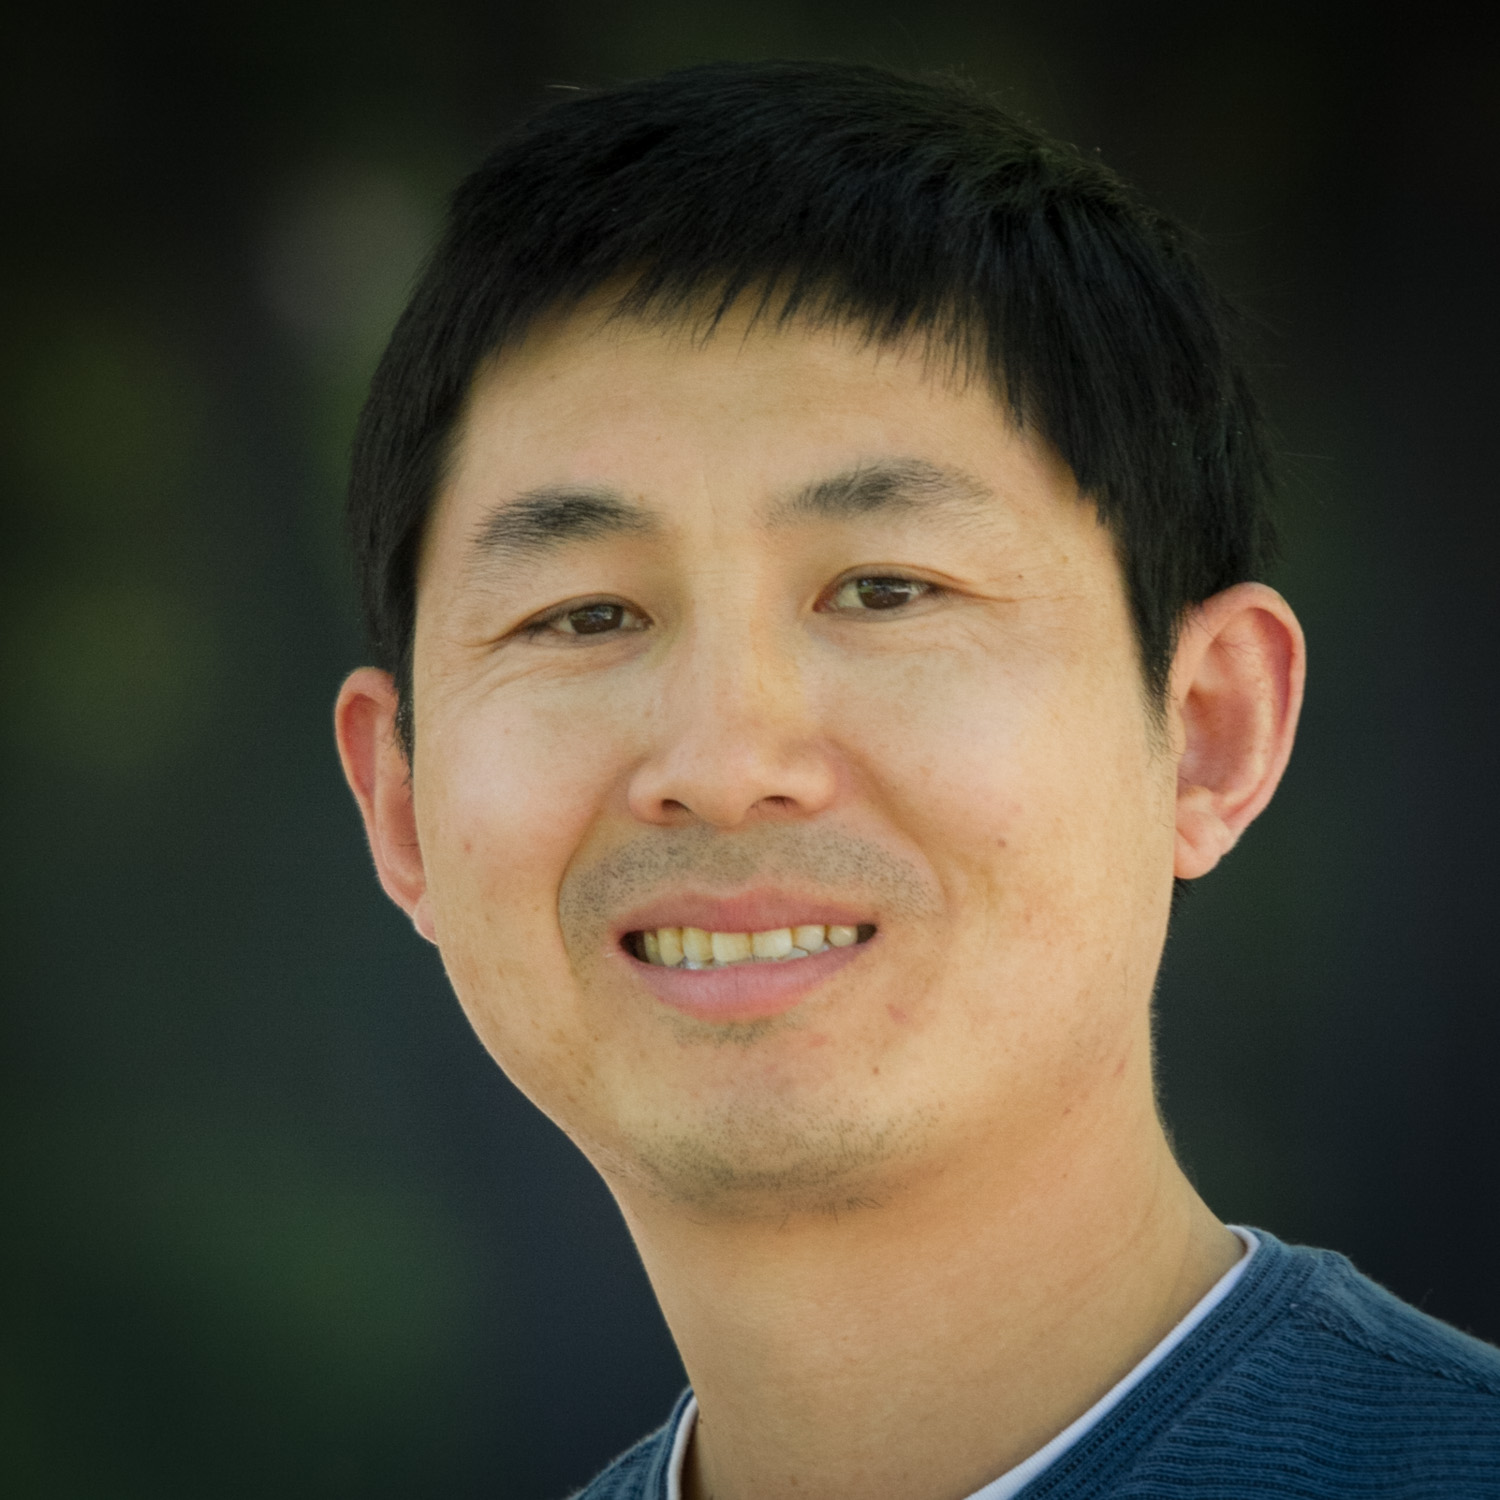 Song Cao, Ph.D., Instructor   I have broad research experience and intensive coding experience in the fields of RNA informatics, cancer genomics and proteomics, viromics and computational biophysics. In the past years, I developed the Vfold model for accurately predicting RNA two and three-dimensional structures, the VirusScan pipeline for detecting viruses from NGS data, and the PepScan pipeline for processing mass spectra data. In my spare time, I like different outdoor activities such as fishing, running, hiking and playing basketball.